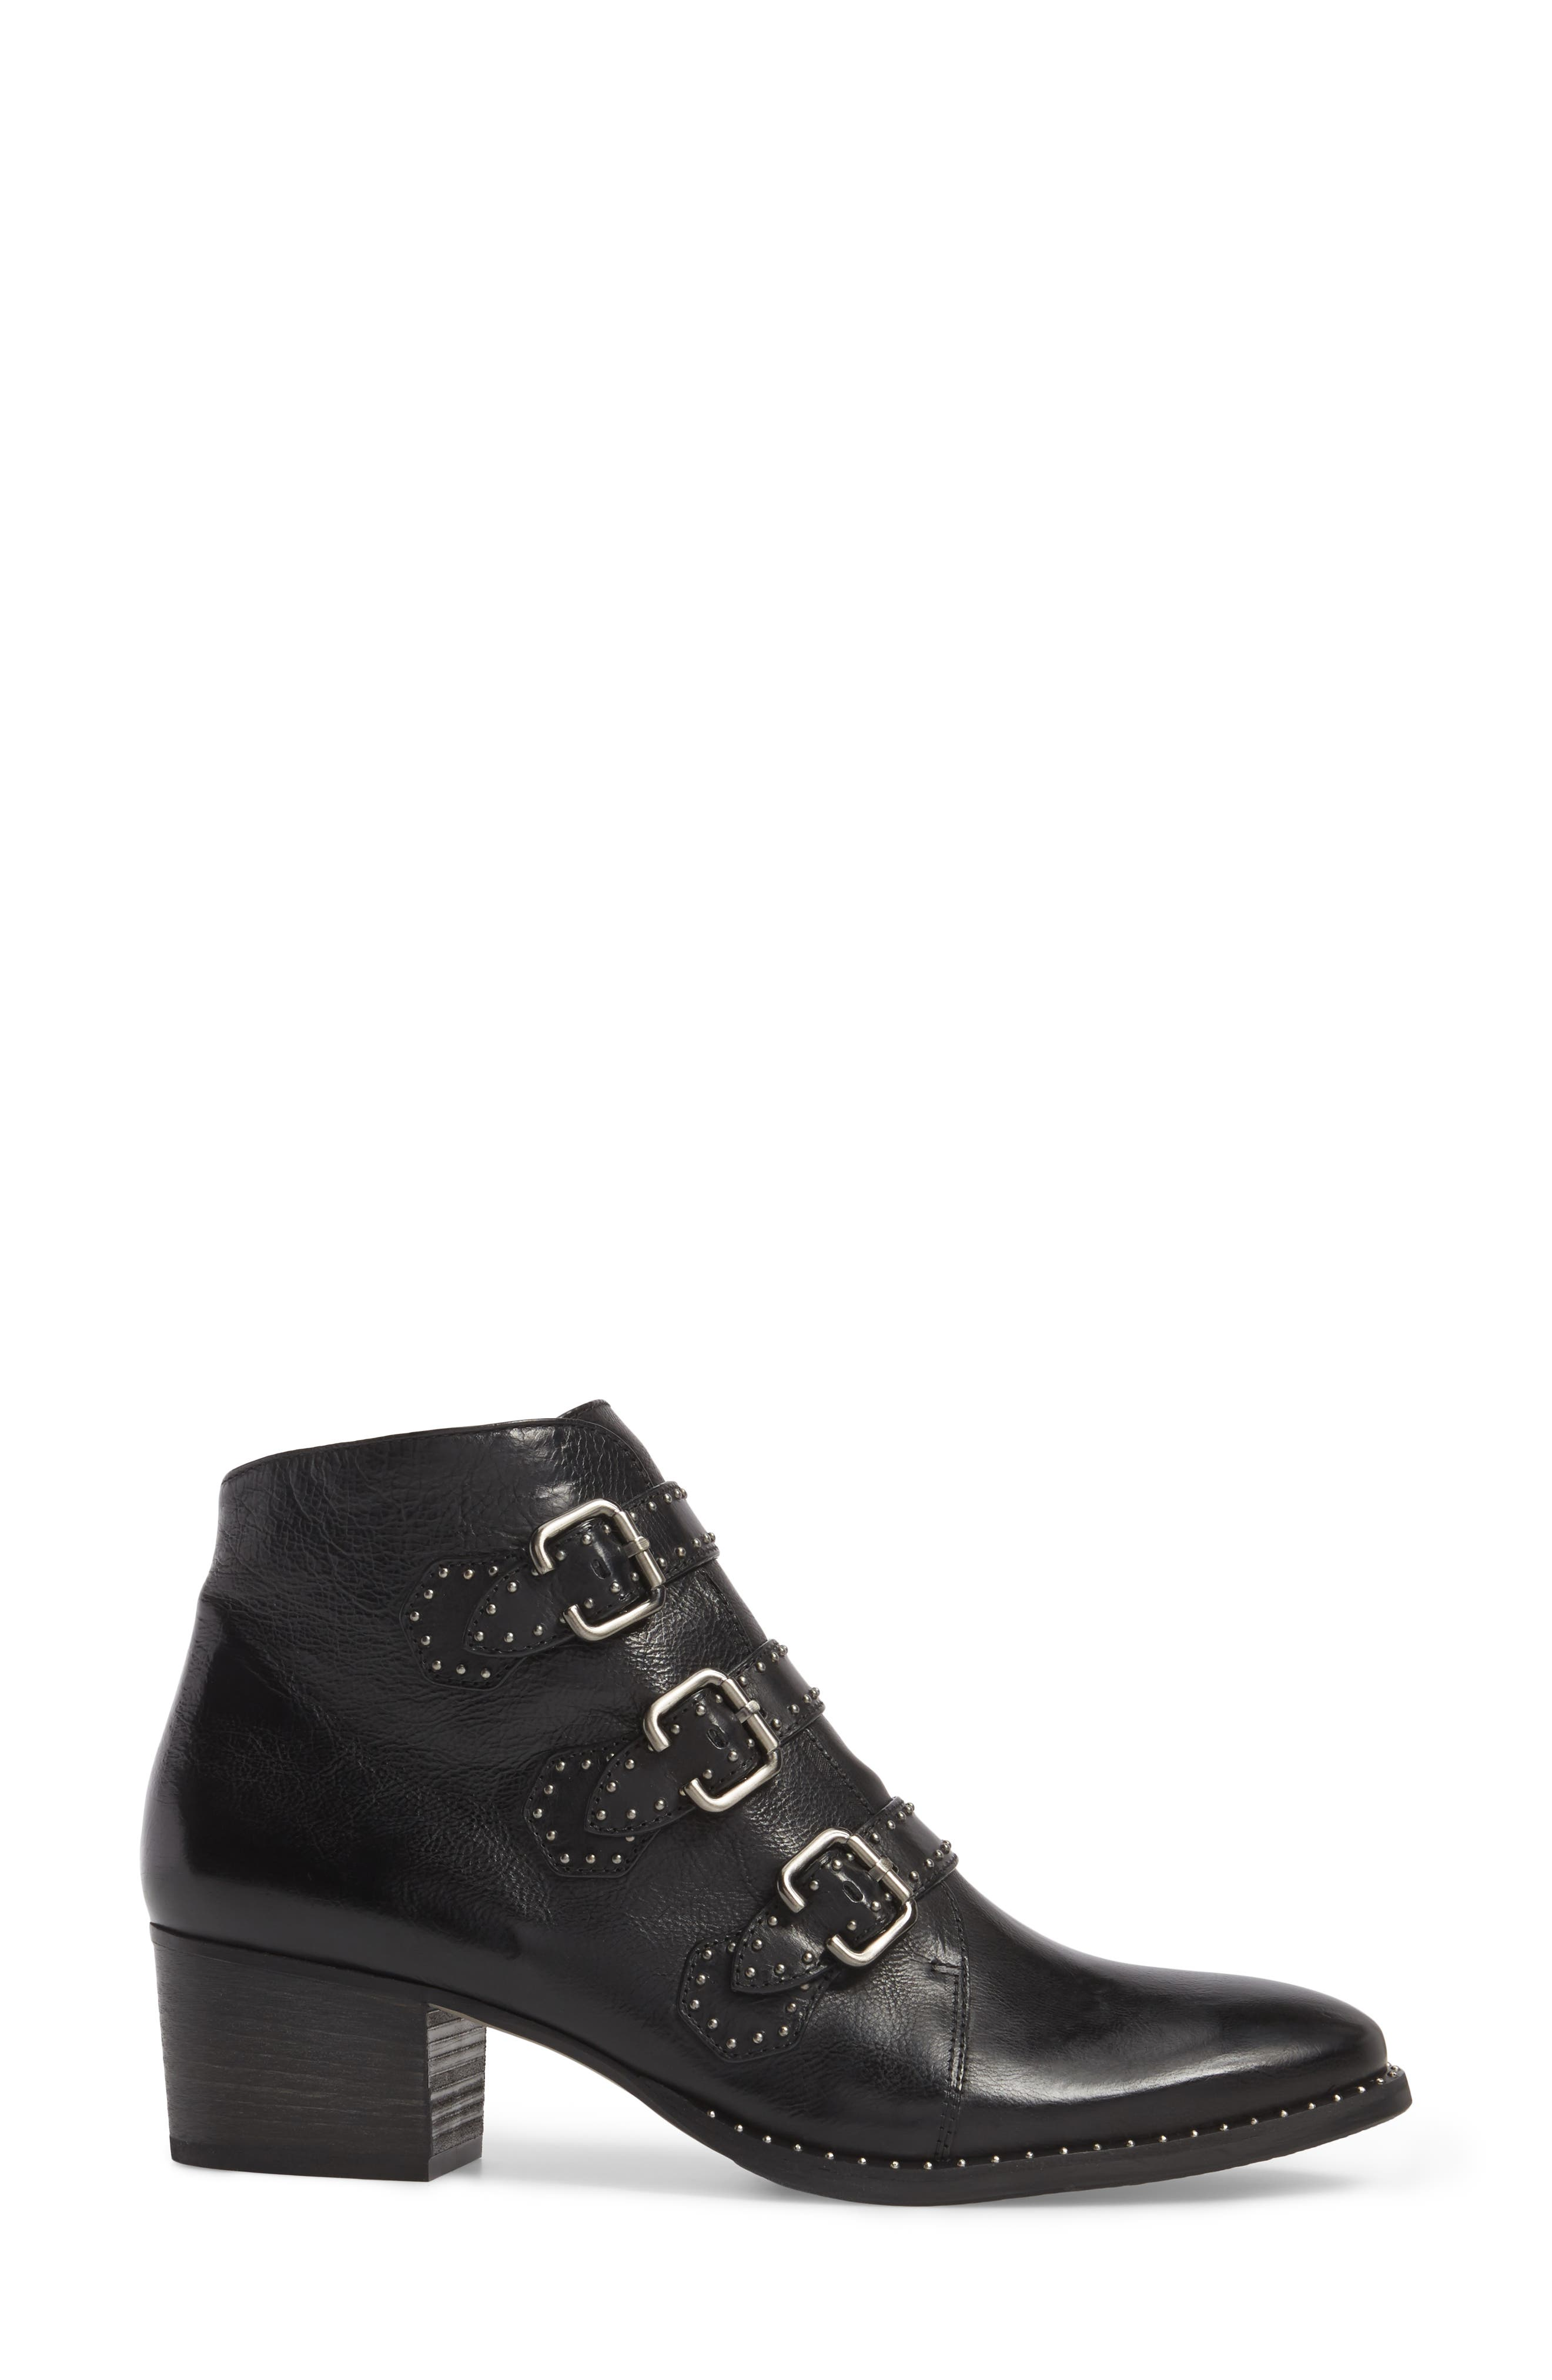 PAUL GREEN, Soho Bootie, Alternate thumbnail 3, color, BLACK LEATHER